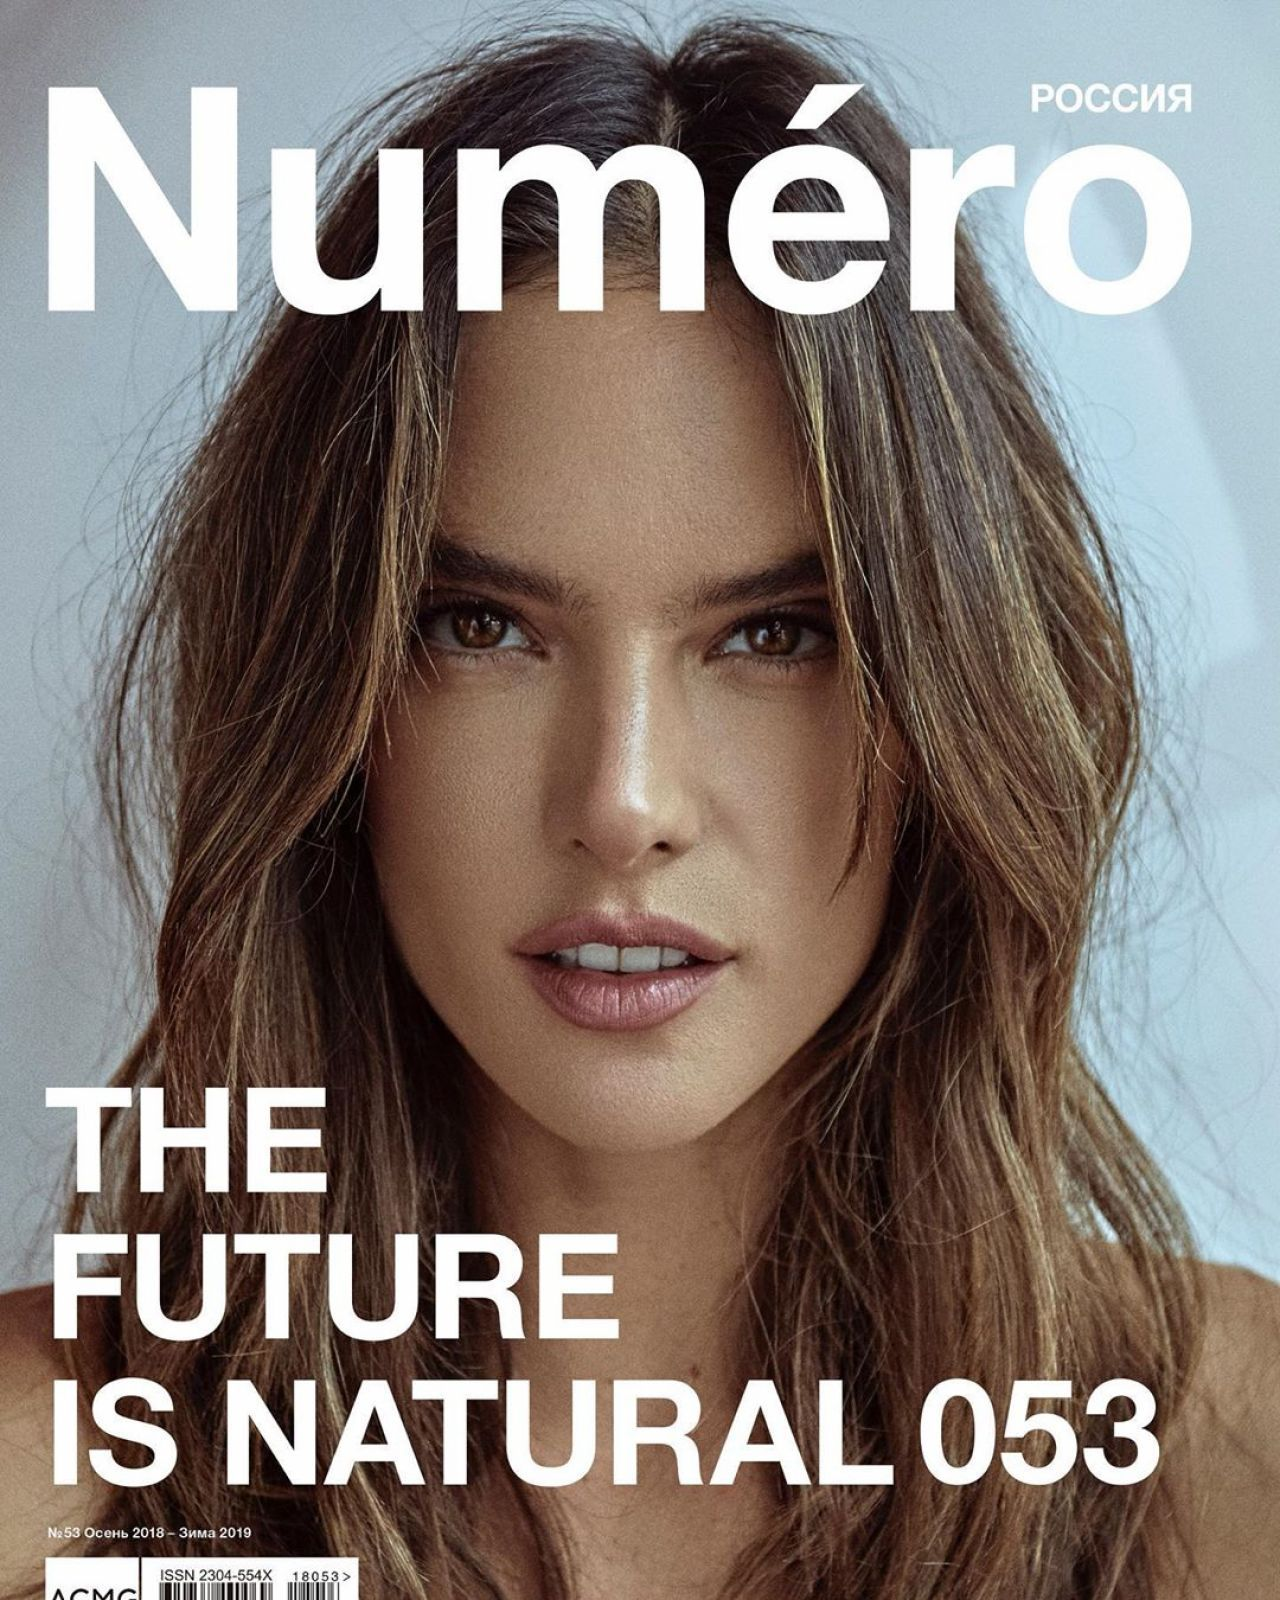 Alessandra Ambrosio Topless Pic. 2018-2019 celebrityes photos leaks!